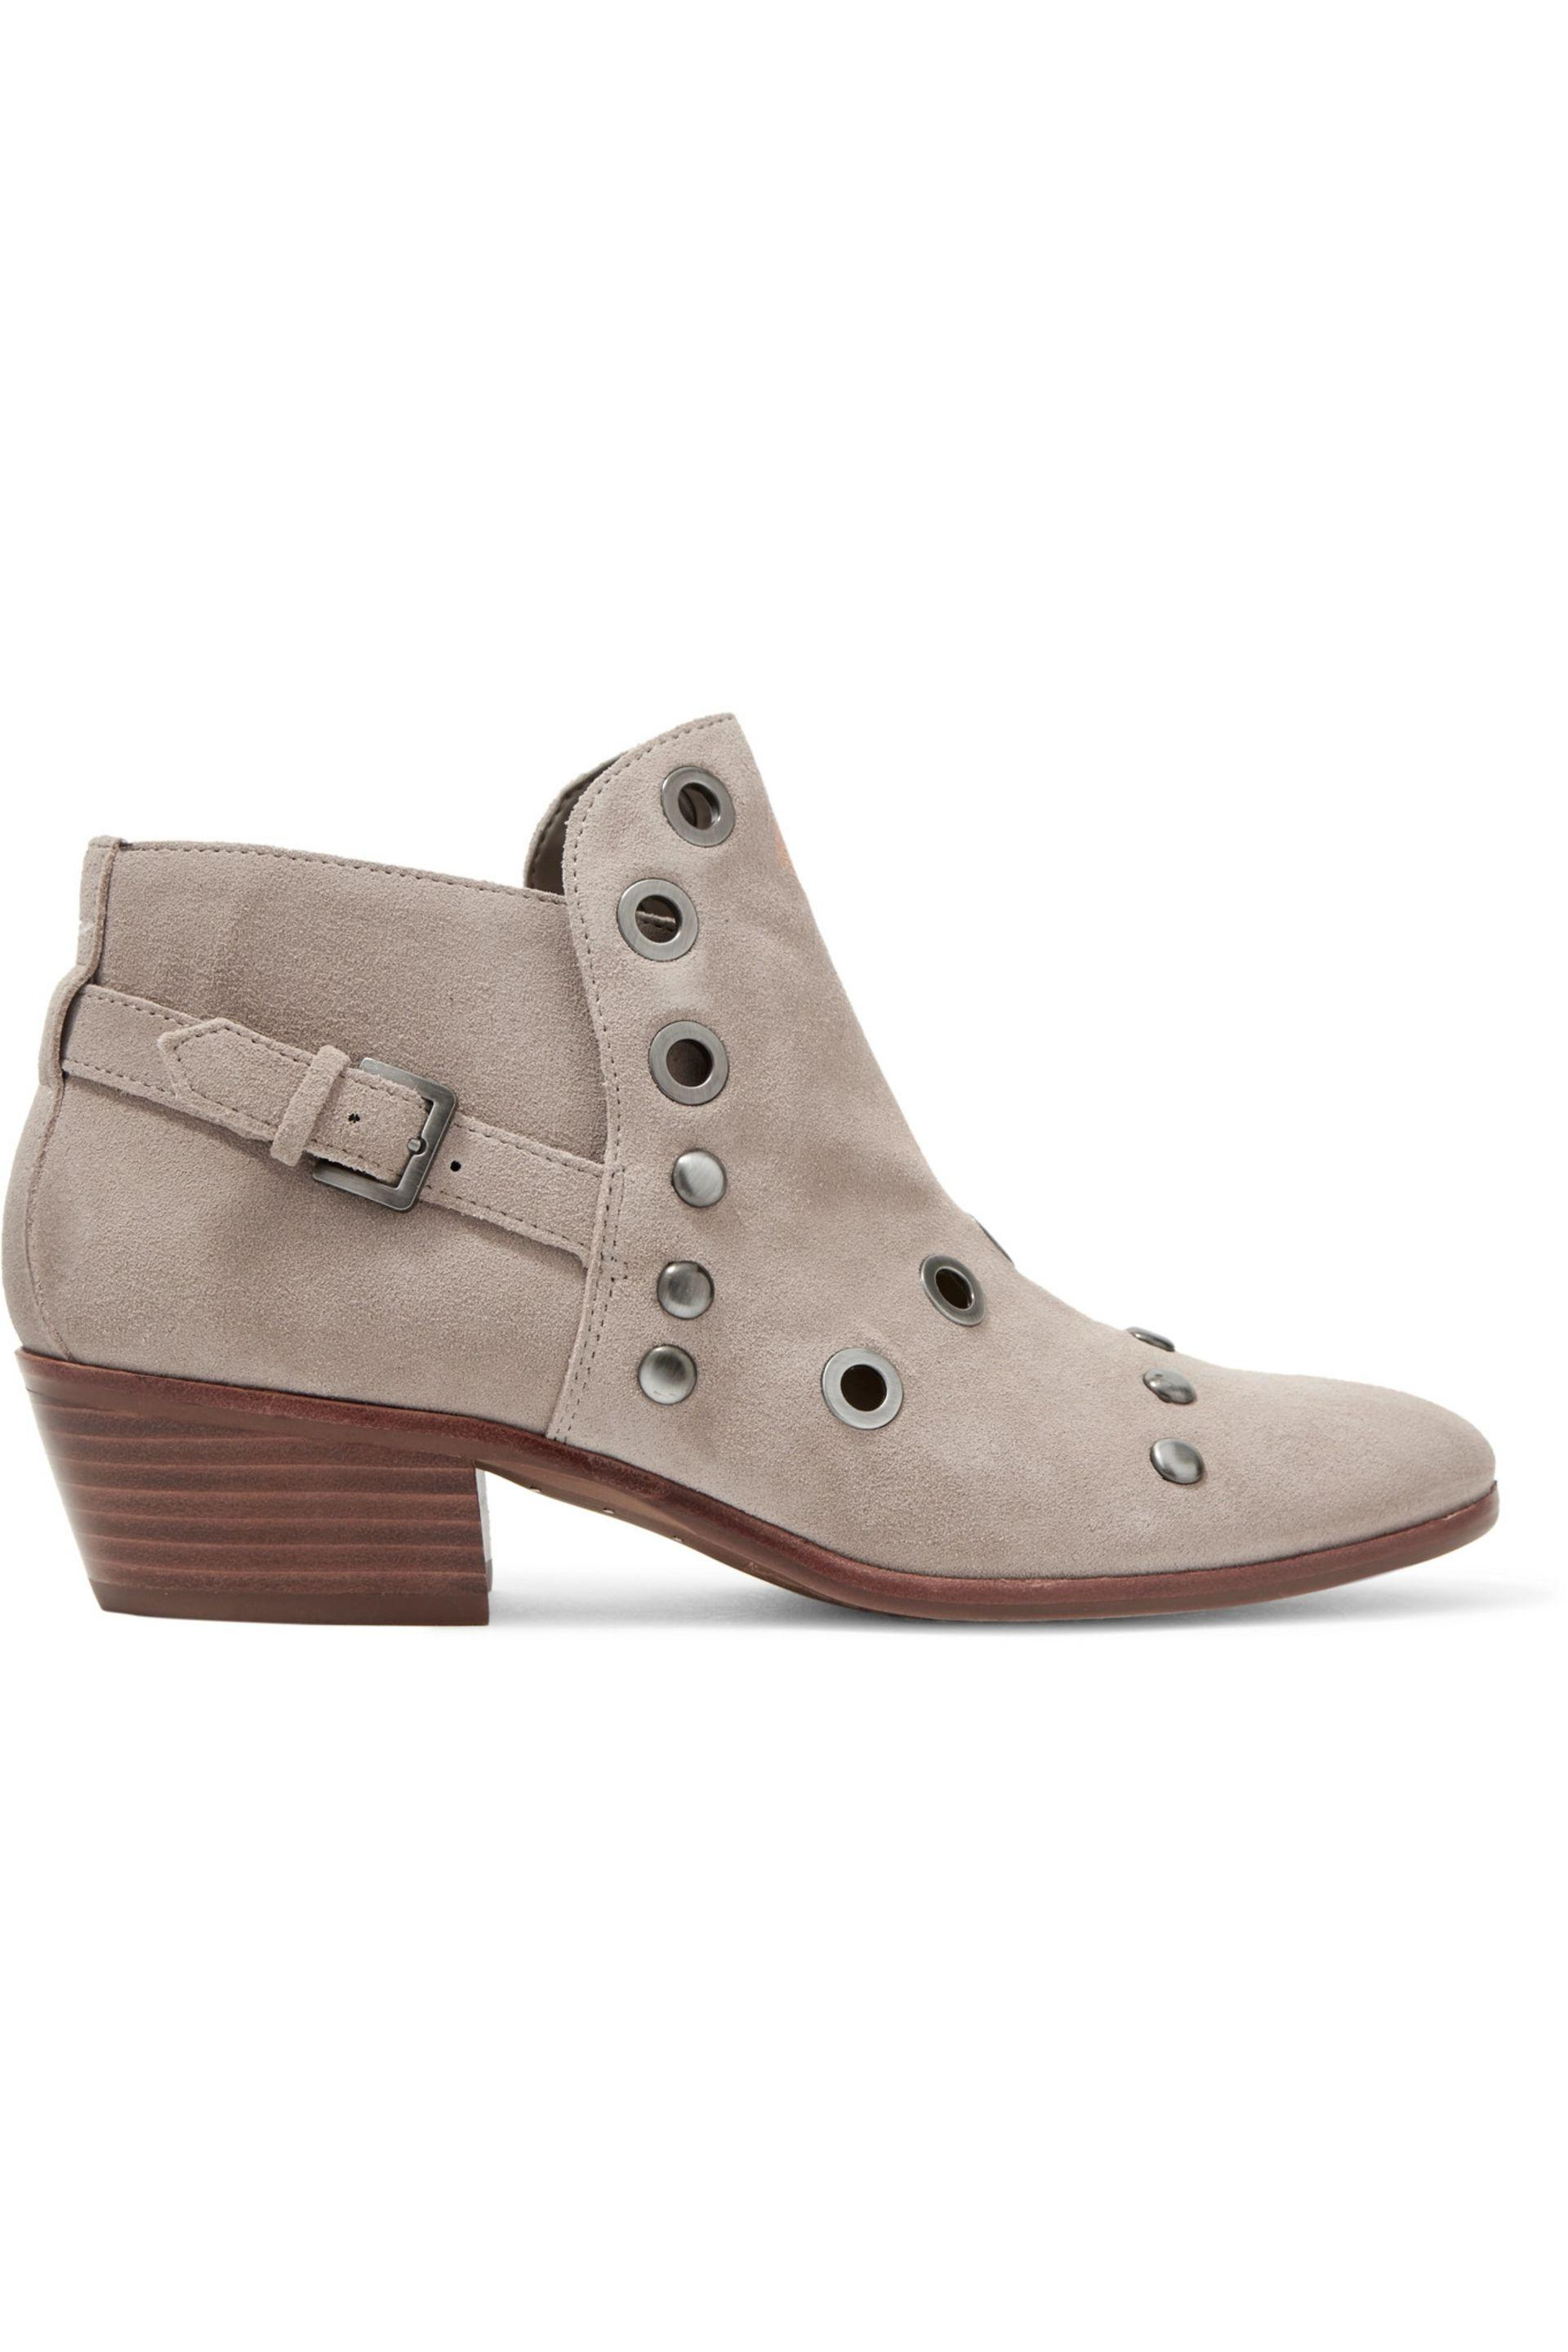 Sam Edelman. Women's Natural Pedra Embellished Suede Ankle Boots